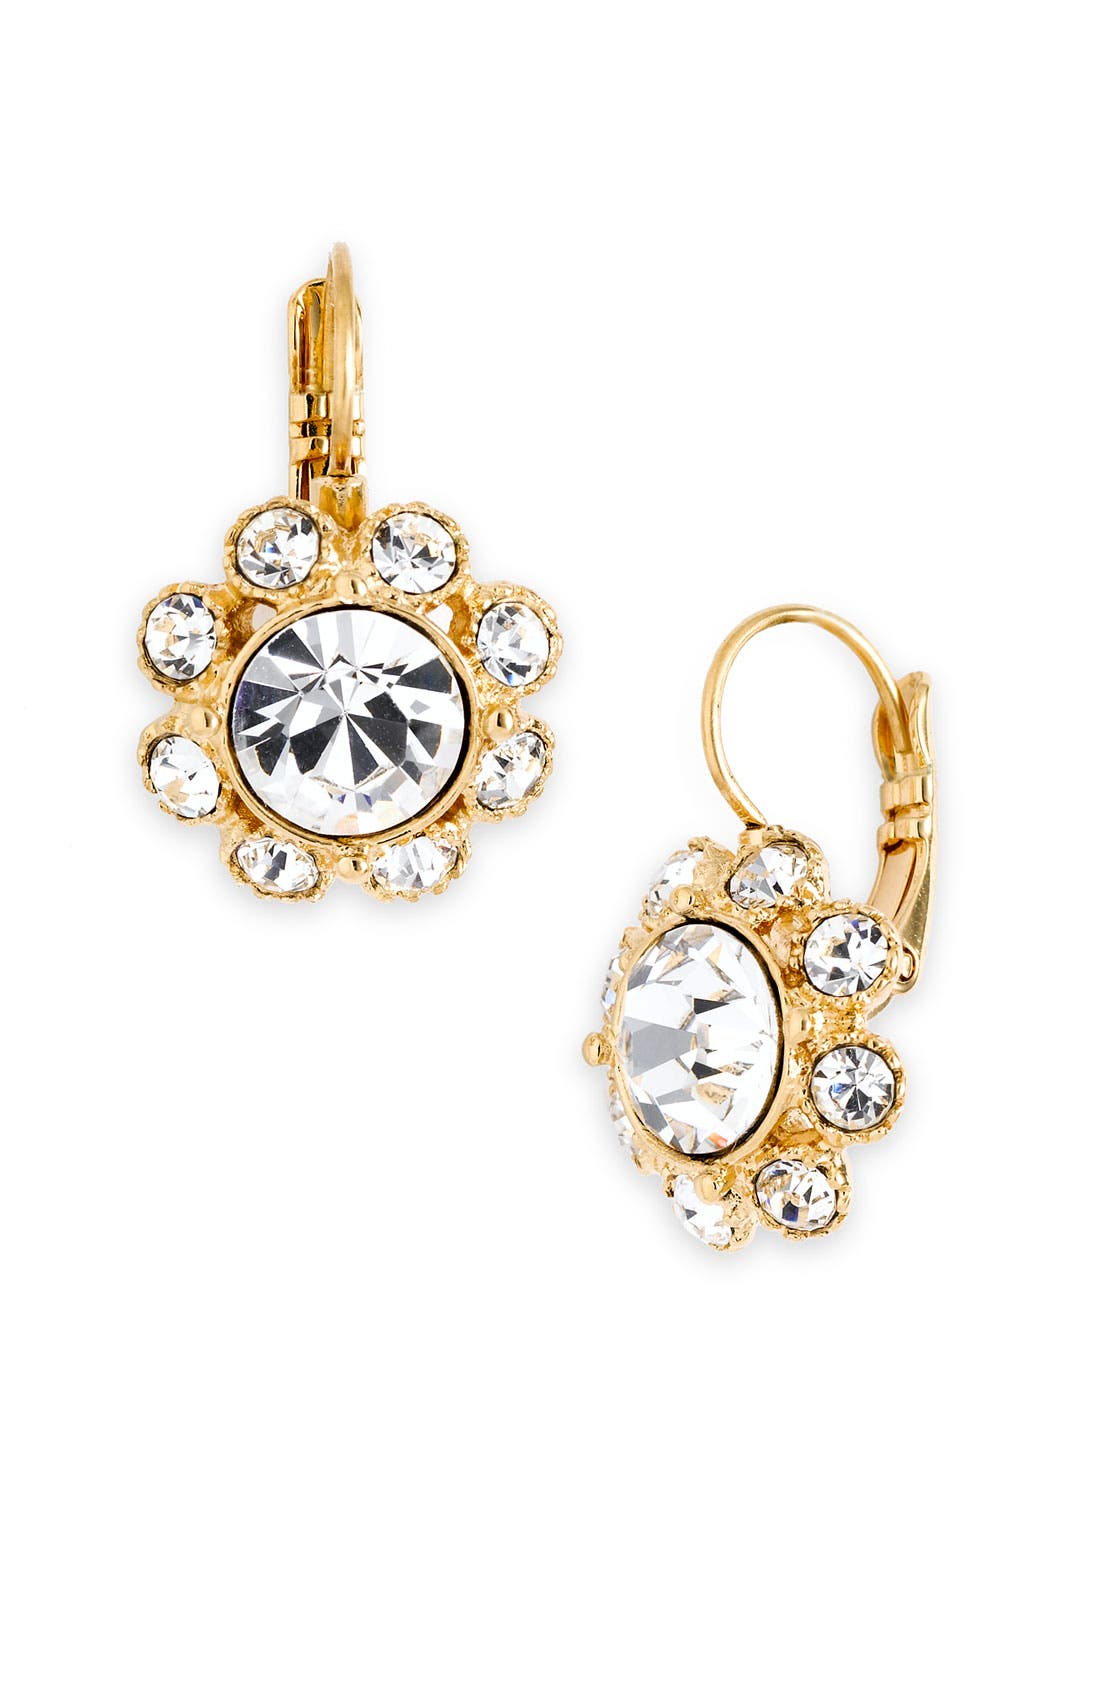 Alternate Image 1 Selected - kate spade new york 'putting on the ritz' earrings